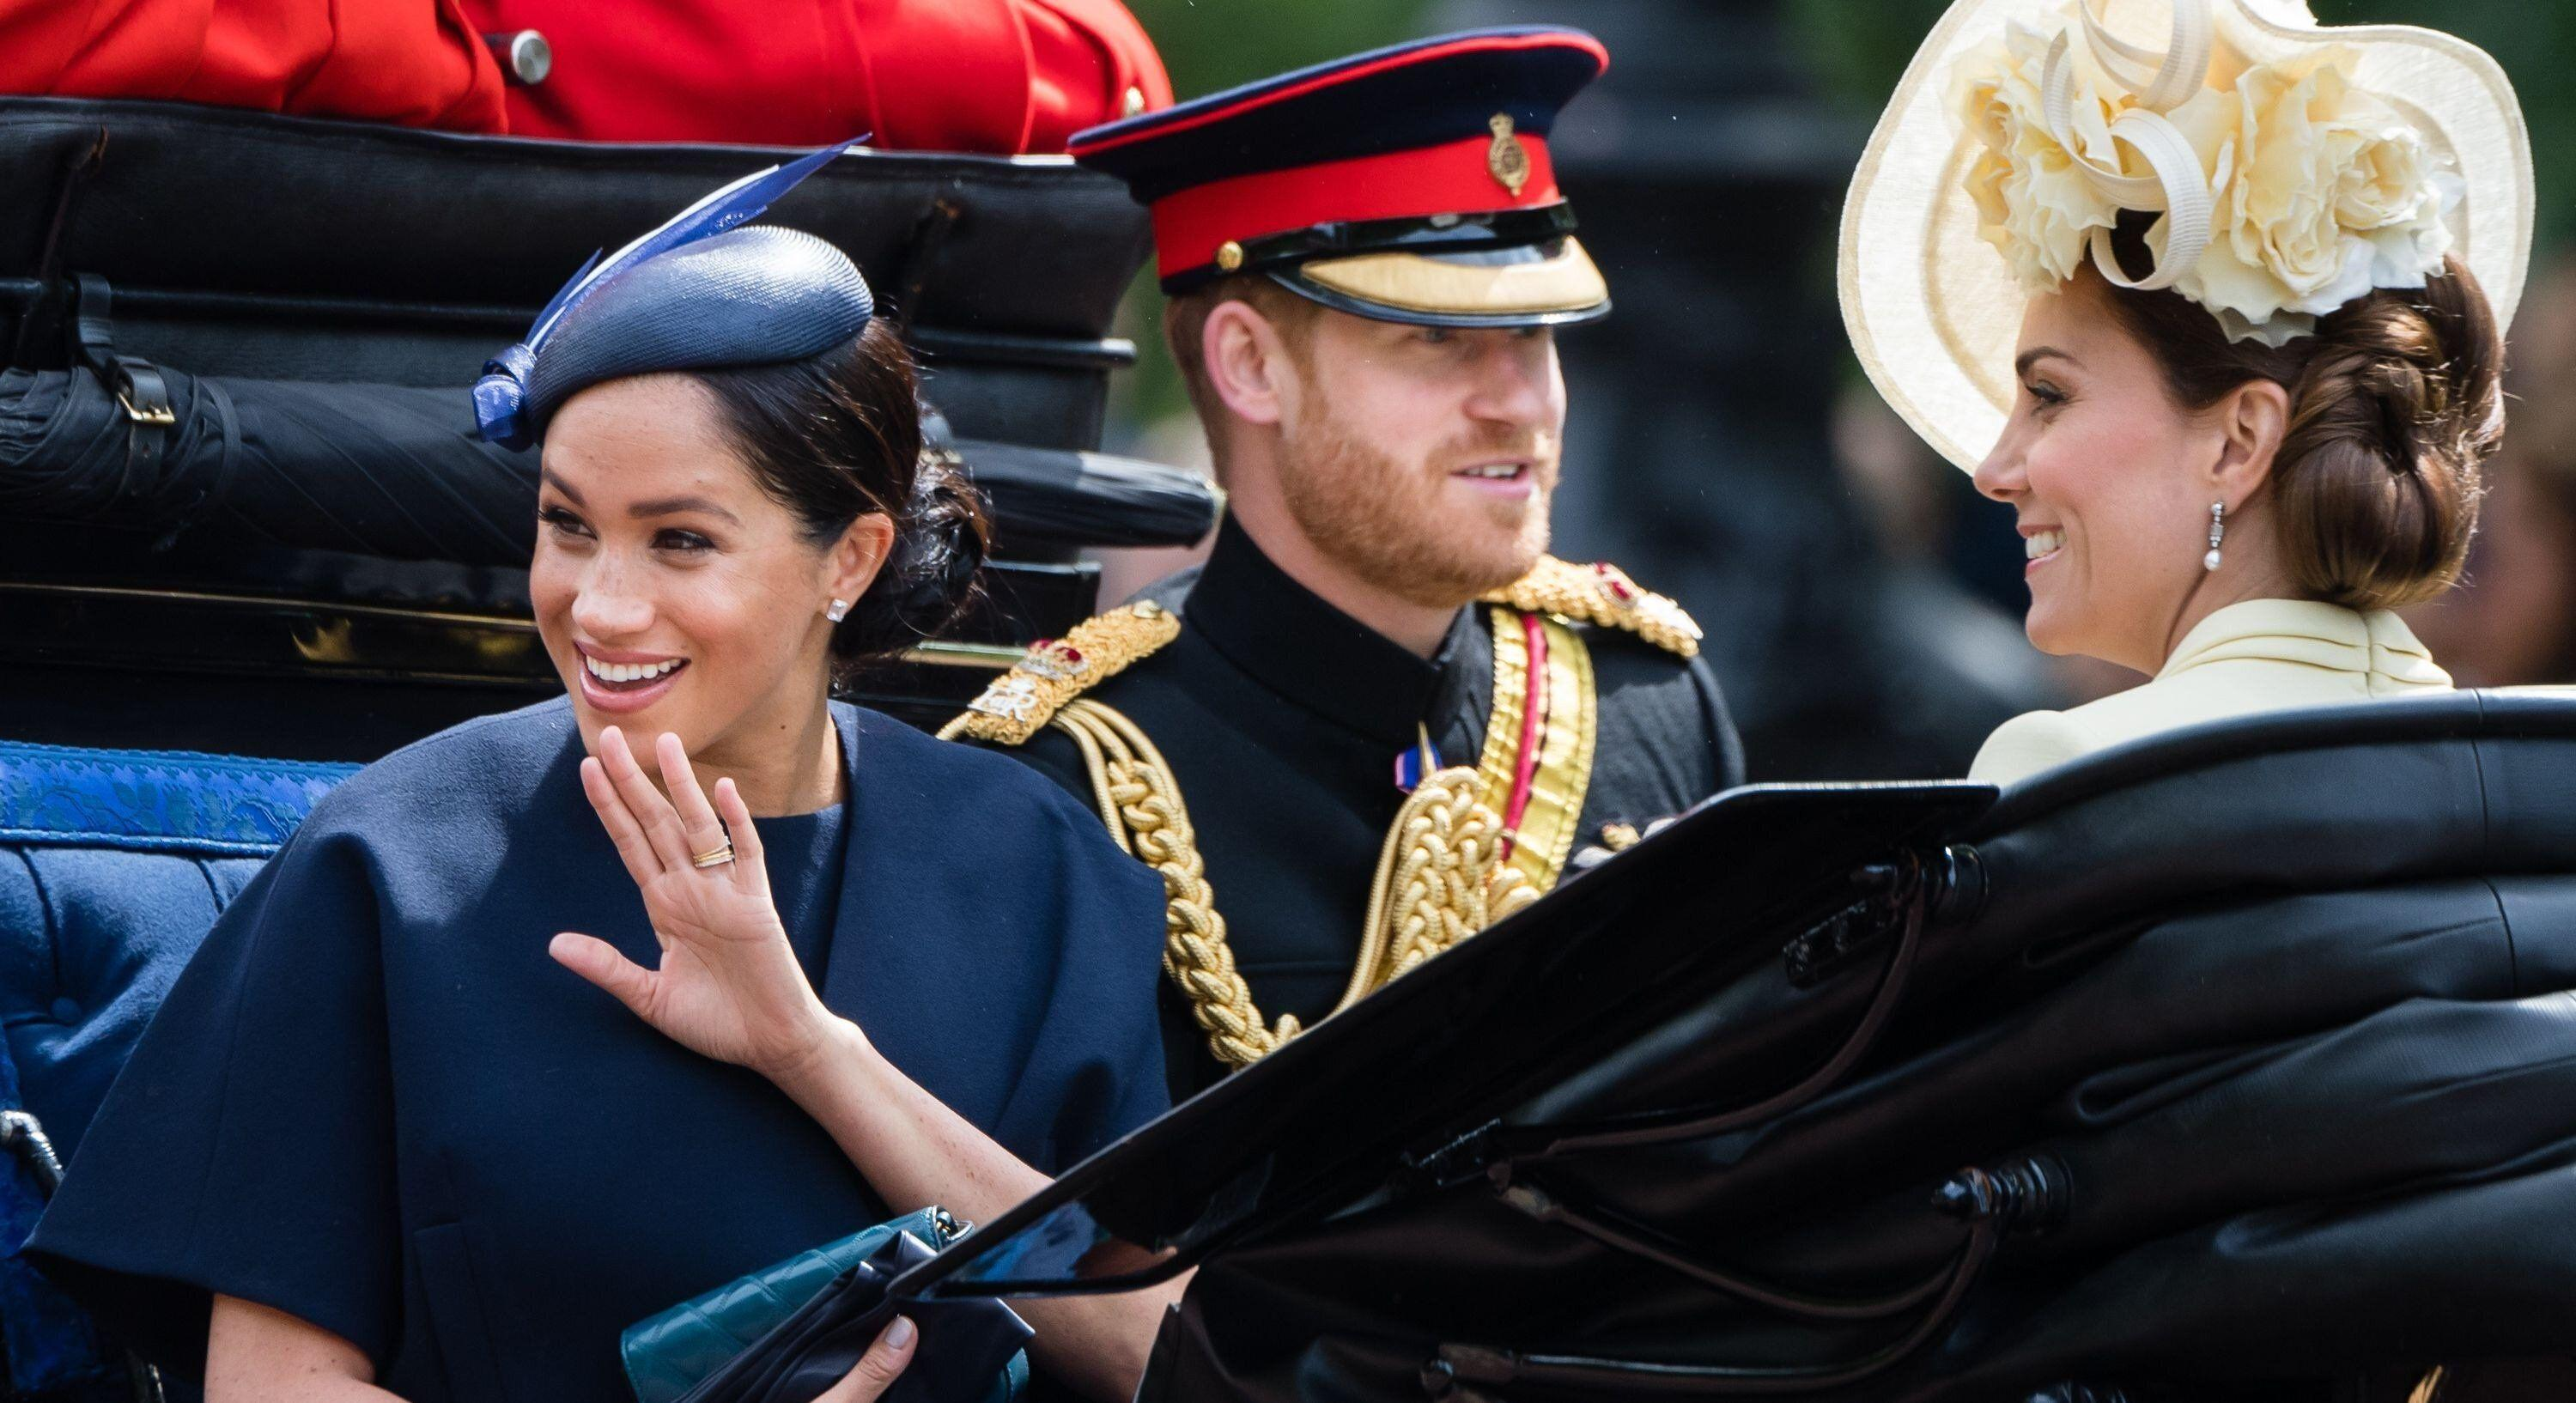 Meghan Markle wore a new ring at Trooping the Colour [Image: Getty]